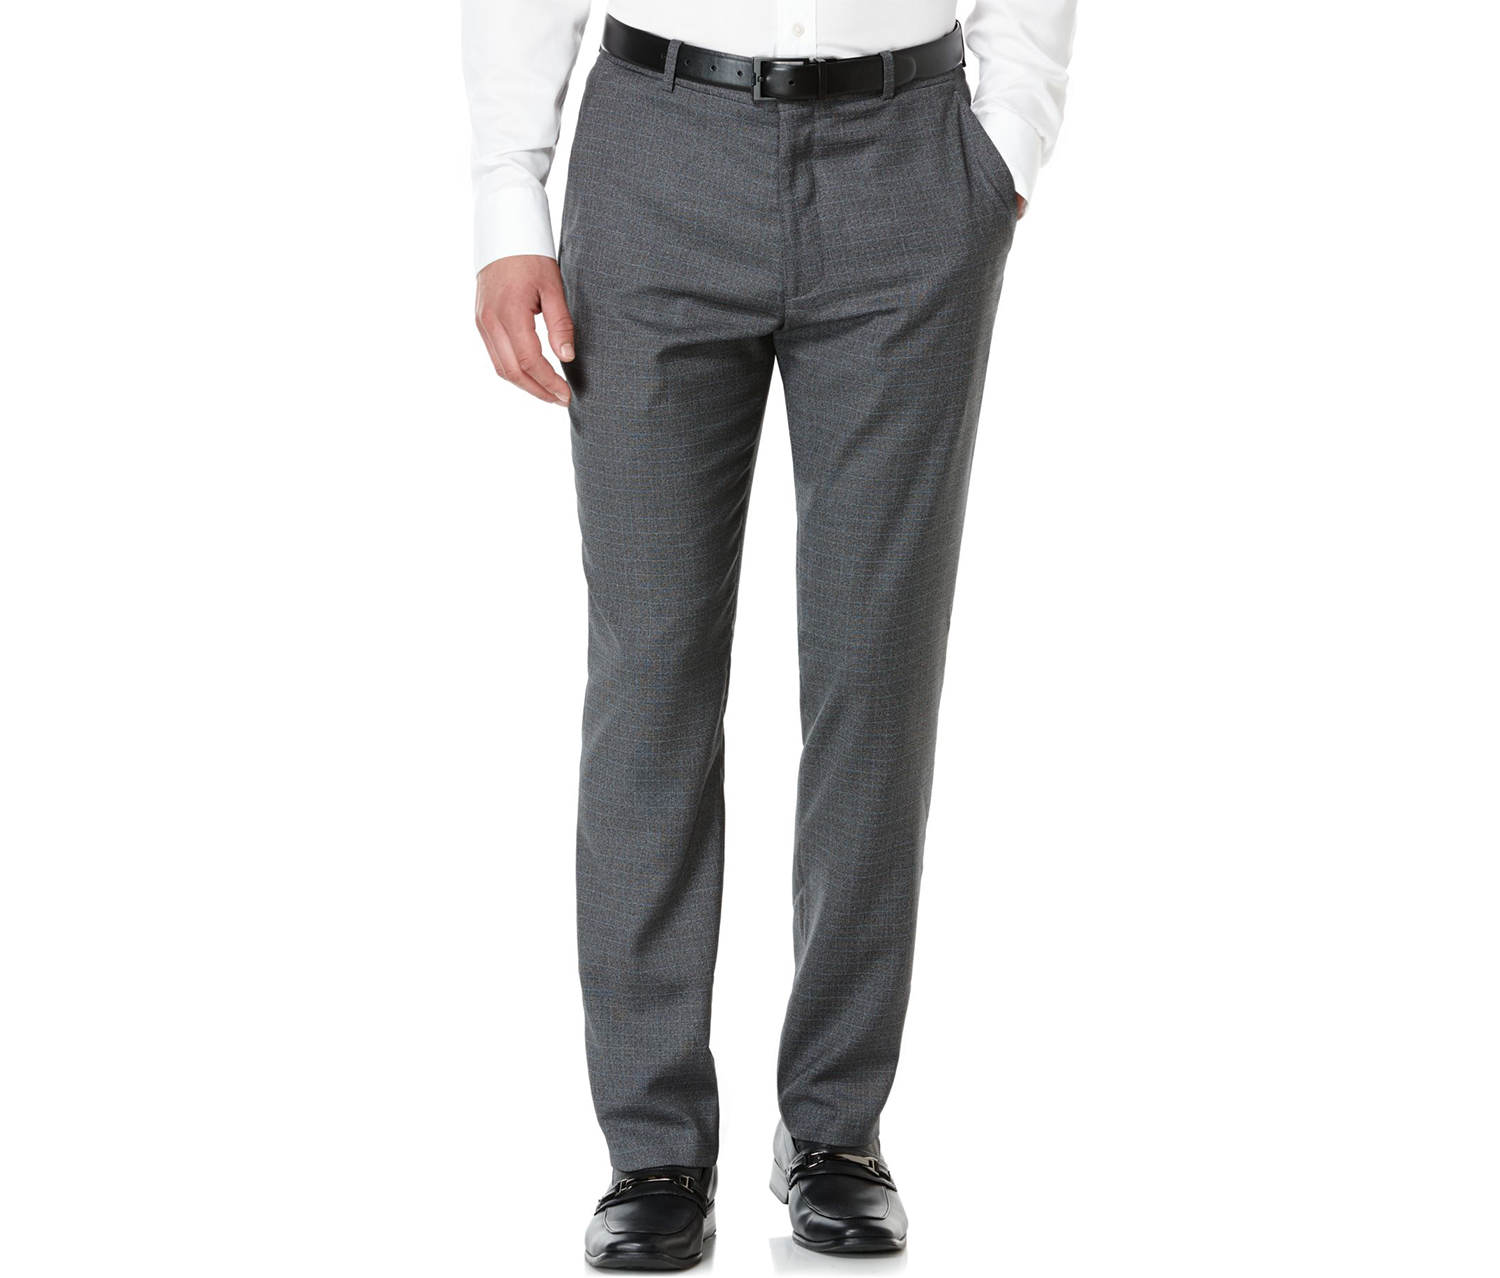 Men's Slim-Fit Subtle-Plaid Flat-Front Pants, Charcoal